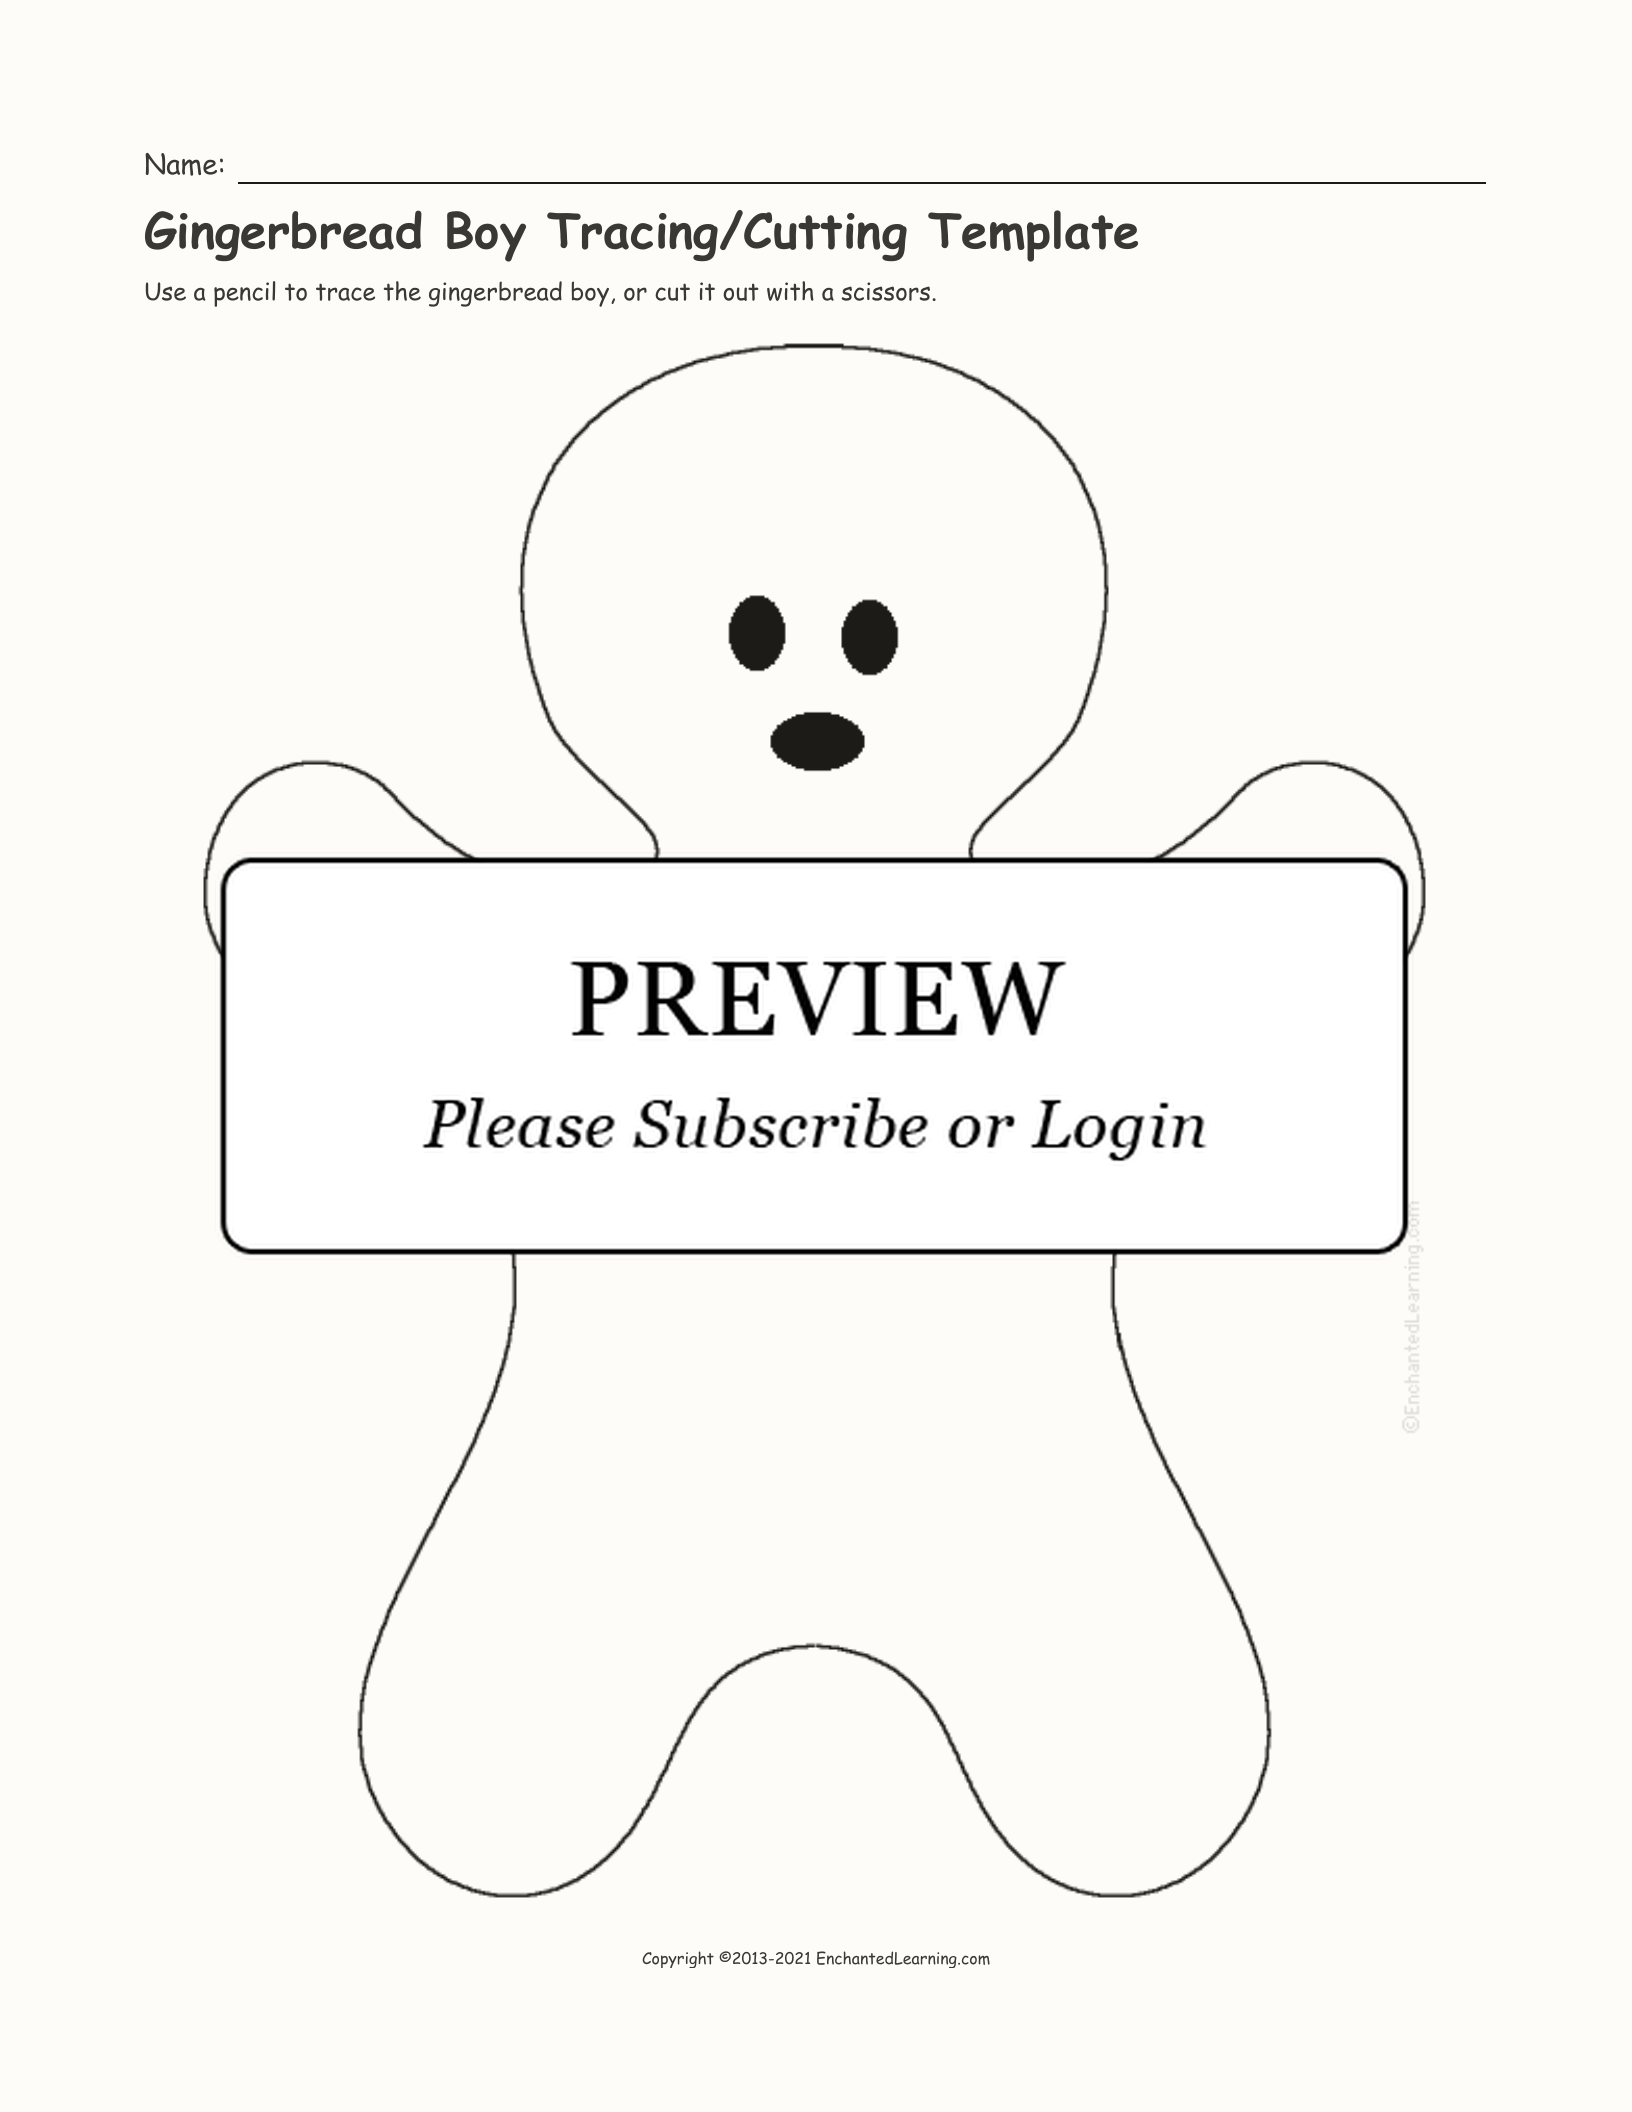 gingerbread boy outline free printable small snowflake templates simple mom outline gingerbread boy